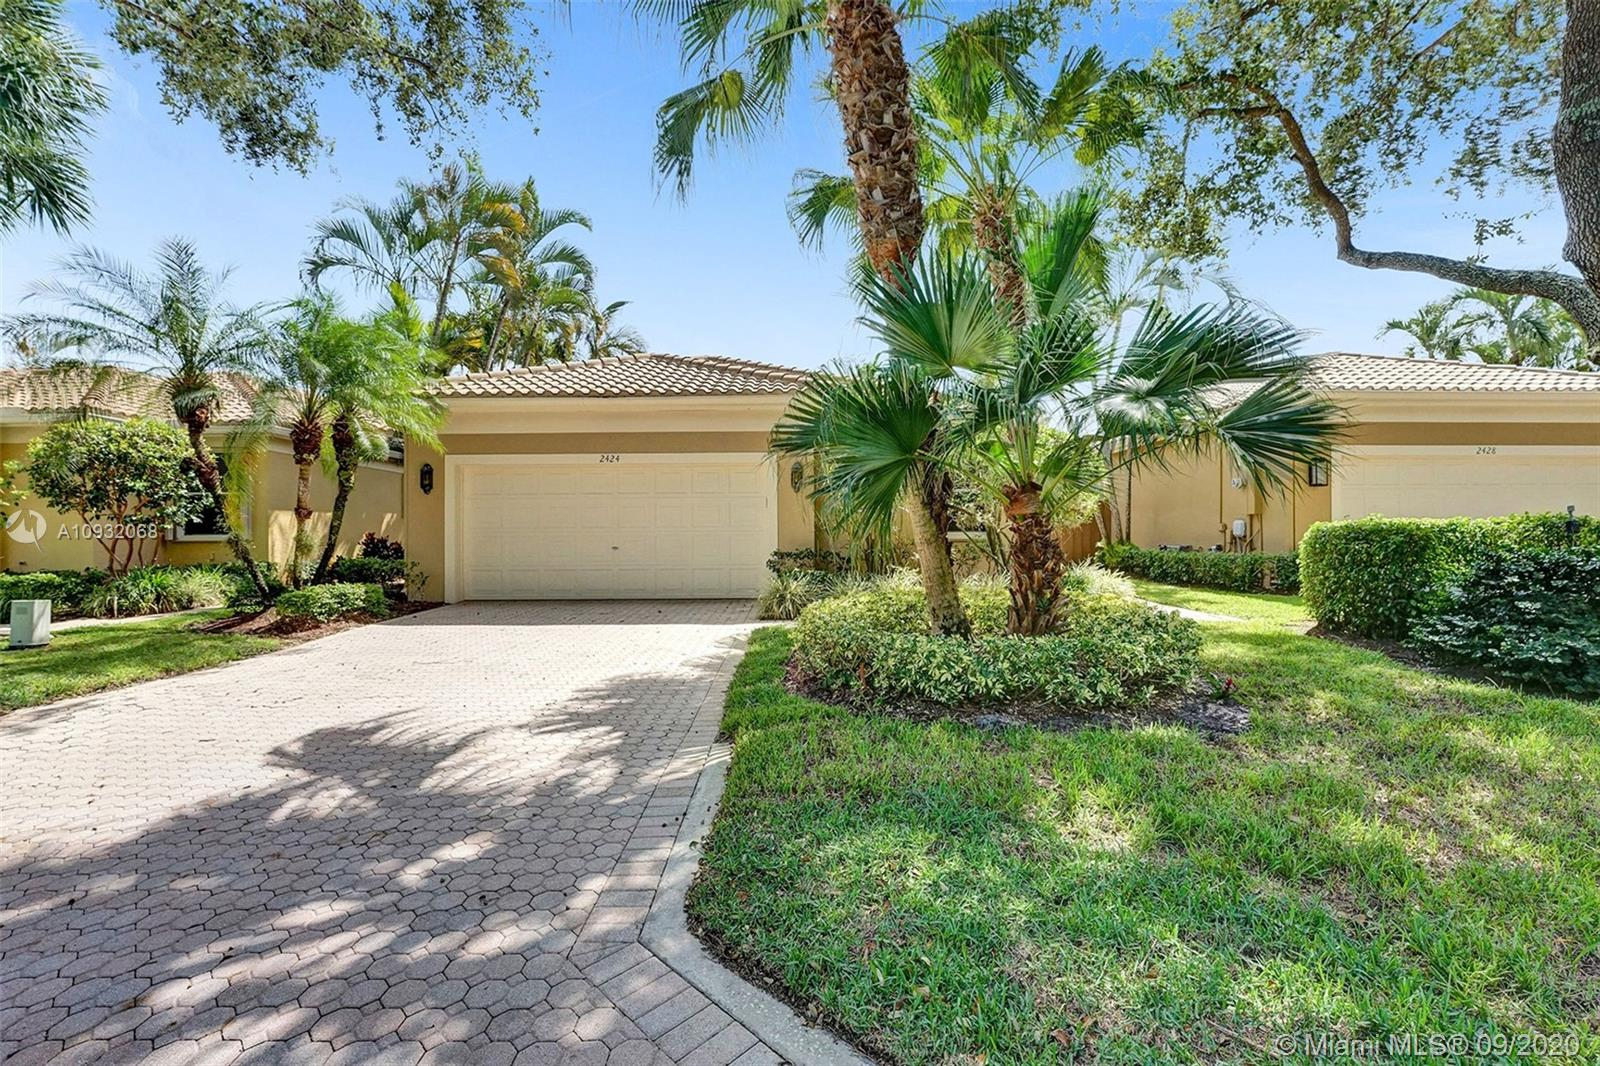 2424 NW 67th St, Boca Raton, Florida 33496, 3 Bedrooms Bedrooms, ,3 BathroomsBathrooms,Residential,For Sale,2424 NW 67th St,A10932068